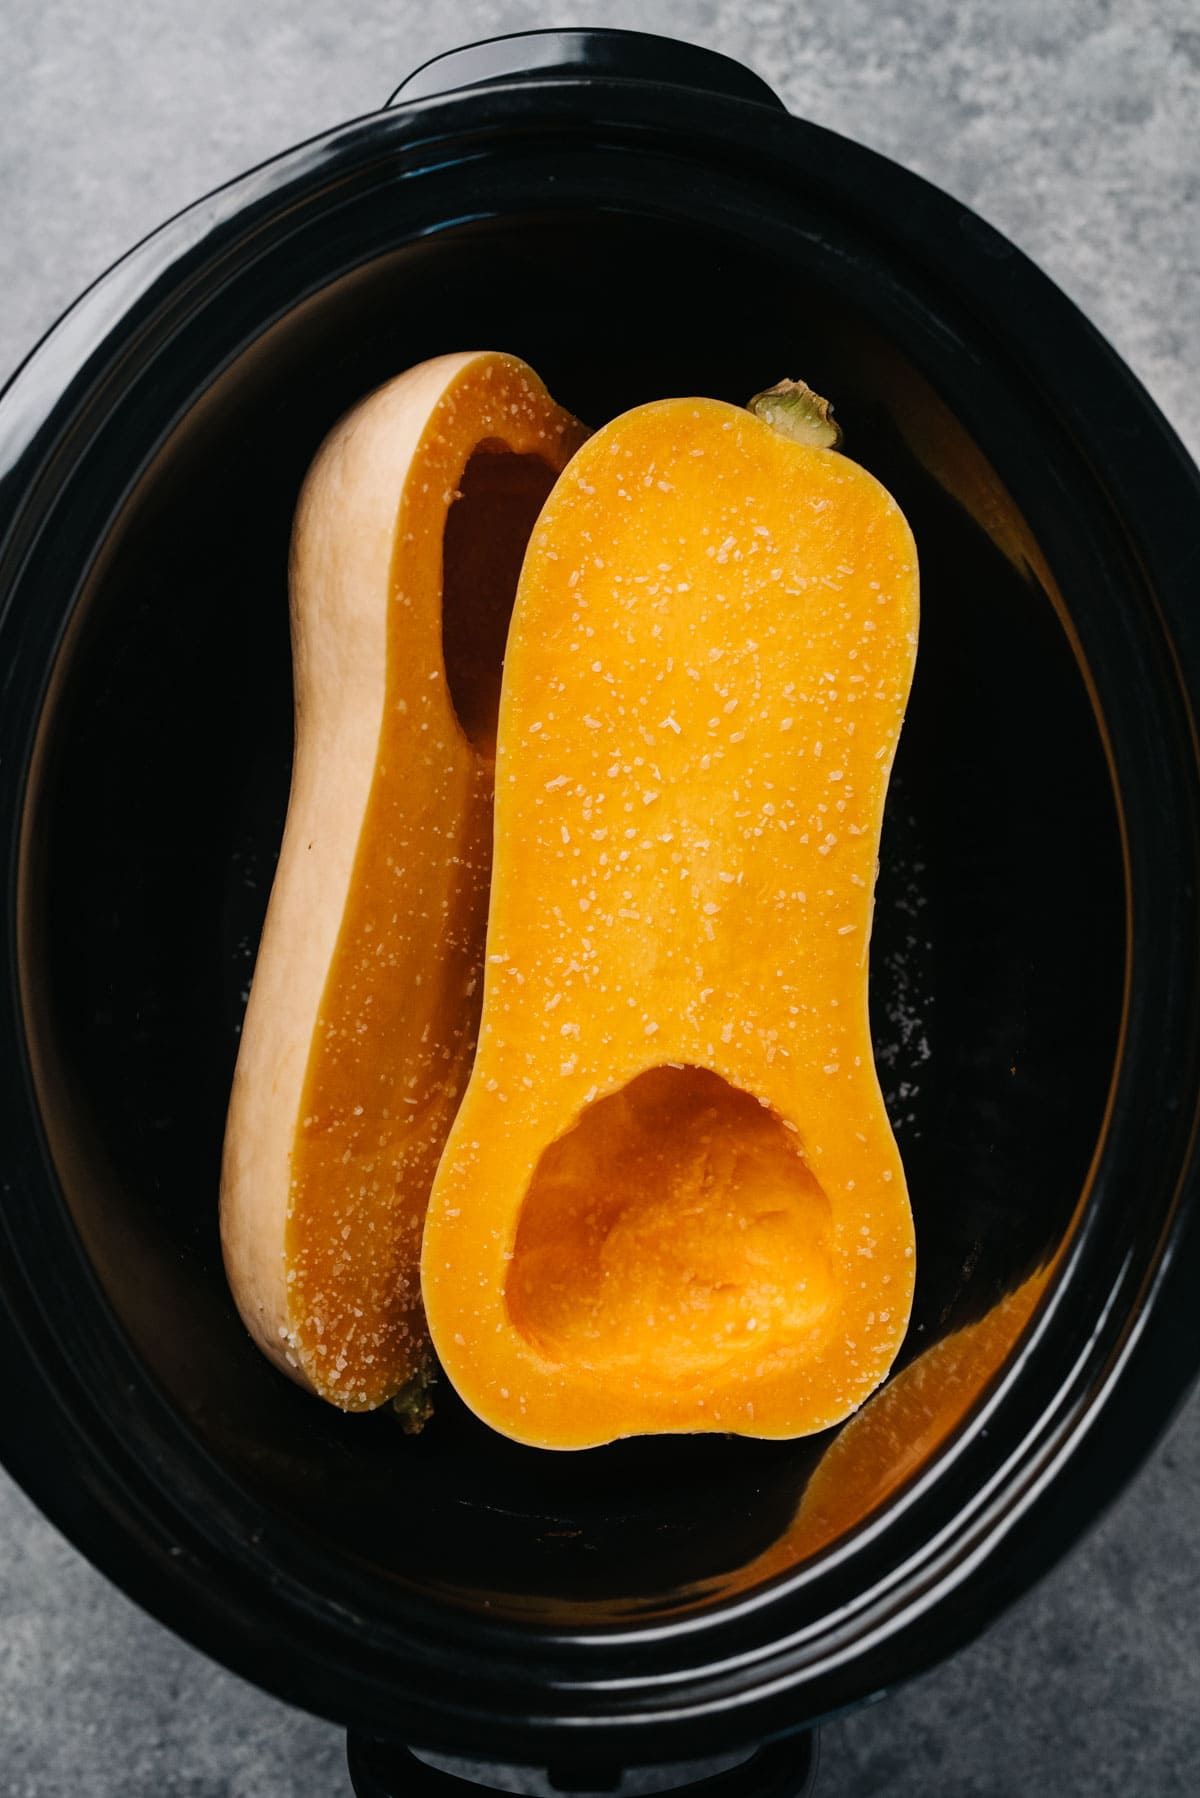 A butternut squash sliced in half with seeds removed in a slow cooker.